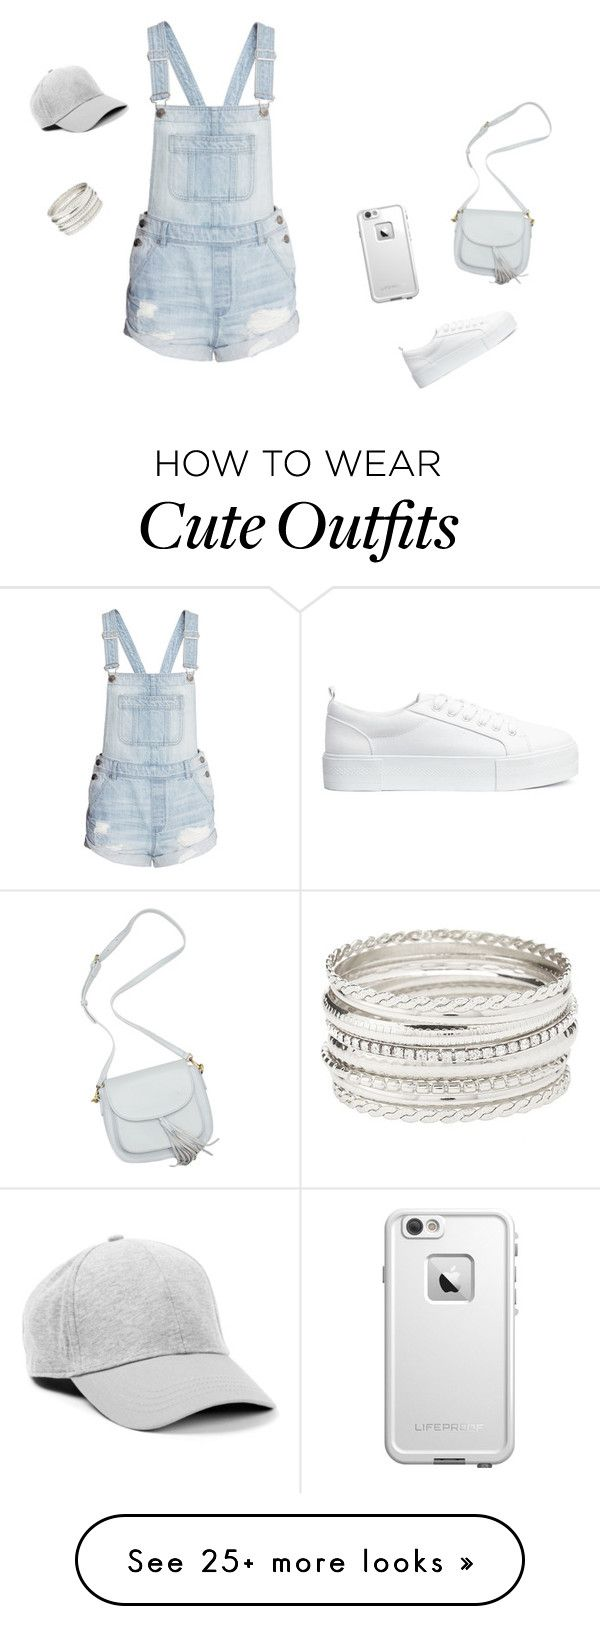 """Comfortable and cute outfit"" by stylefashion04 on Polyvore featuring H&M, LifeProof and Charlotte Russe"